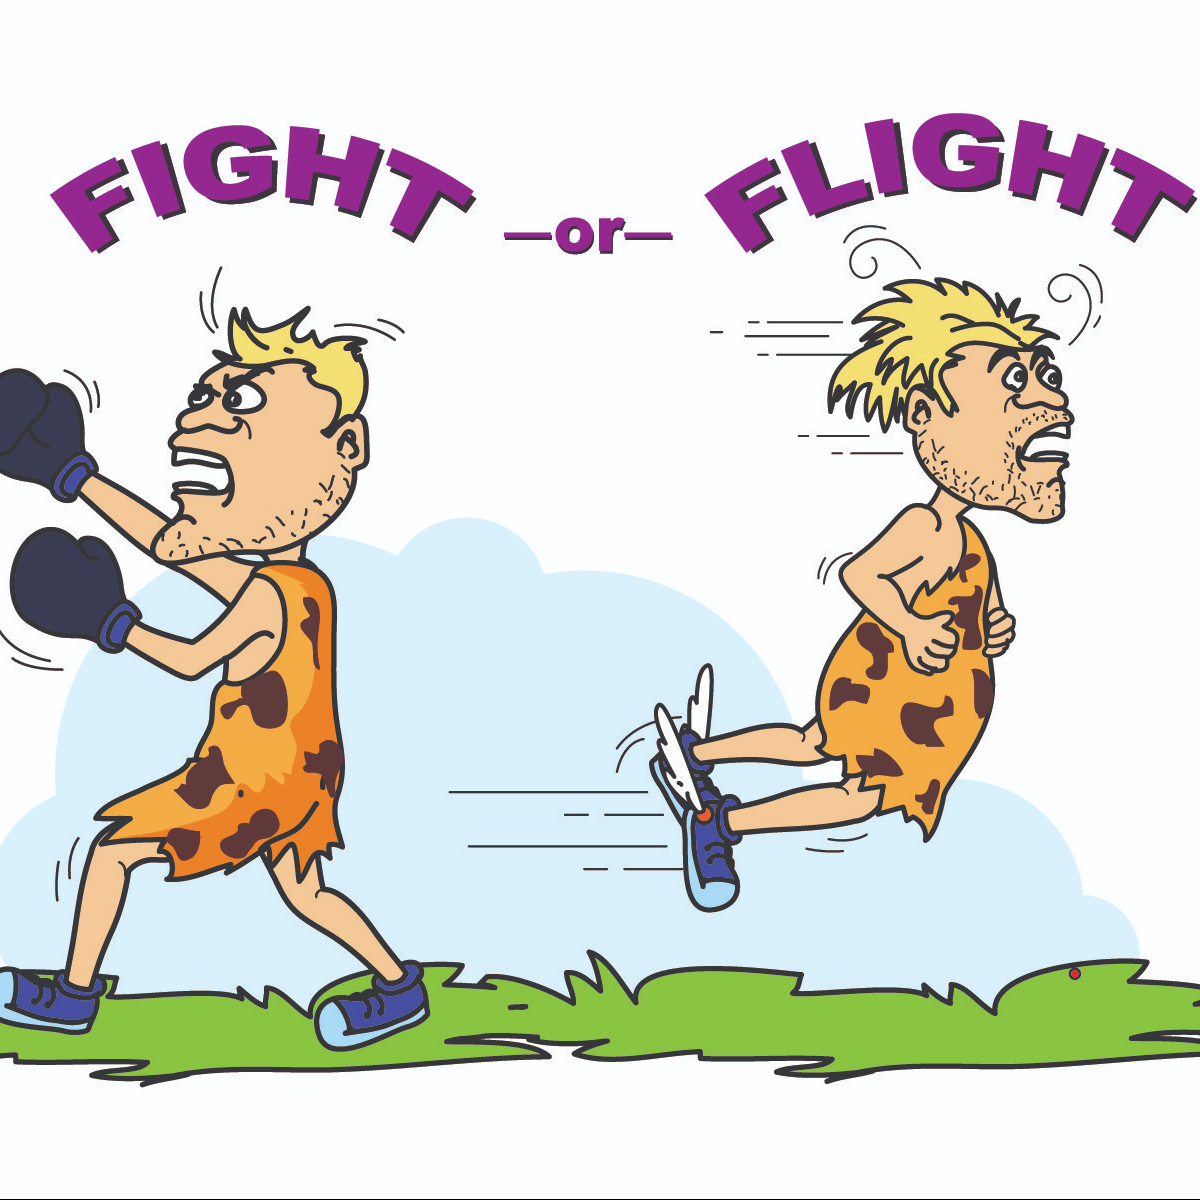 man fight & flight_final_31102017